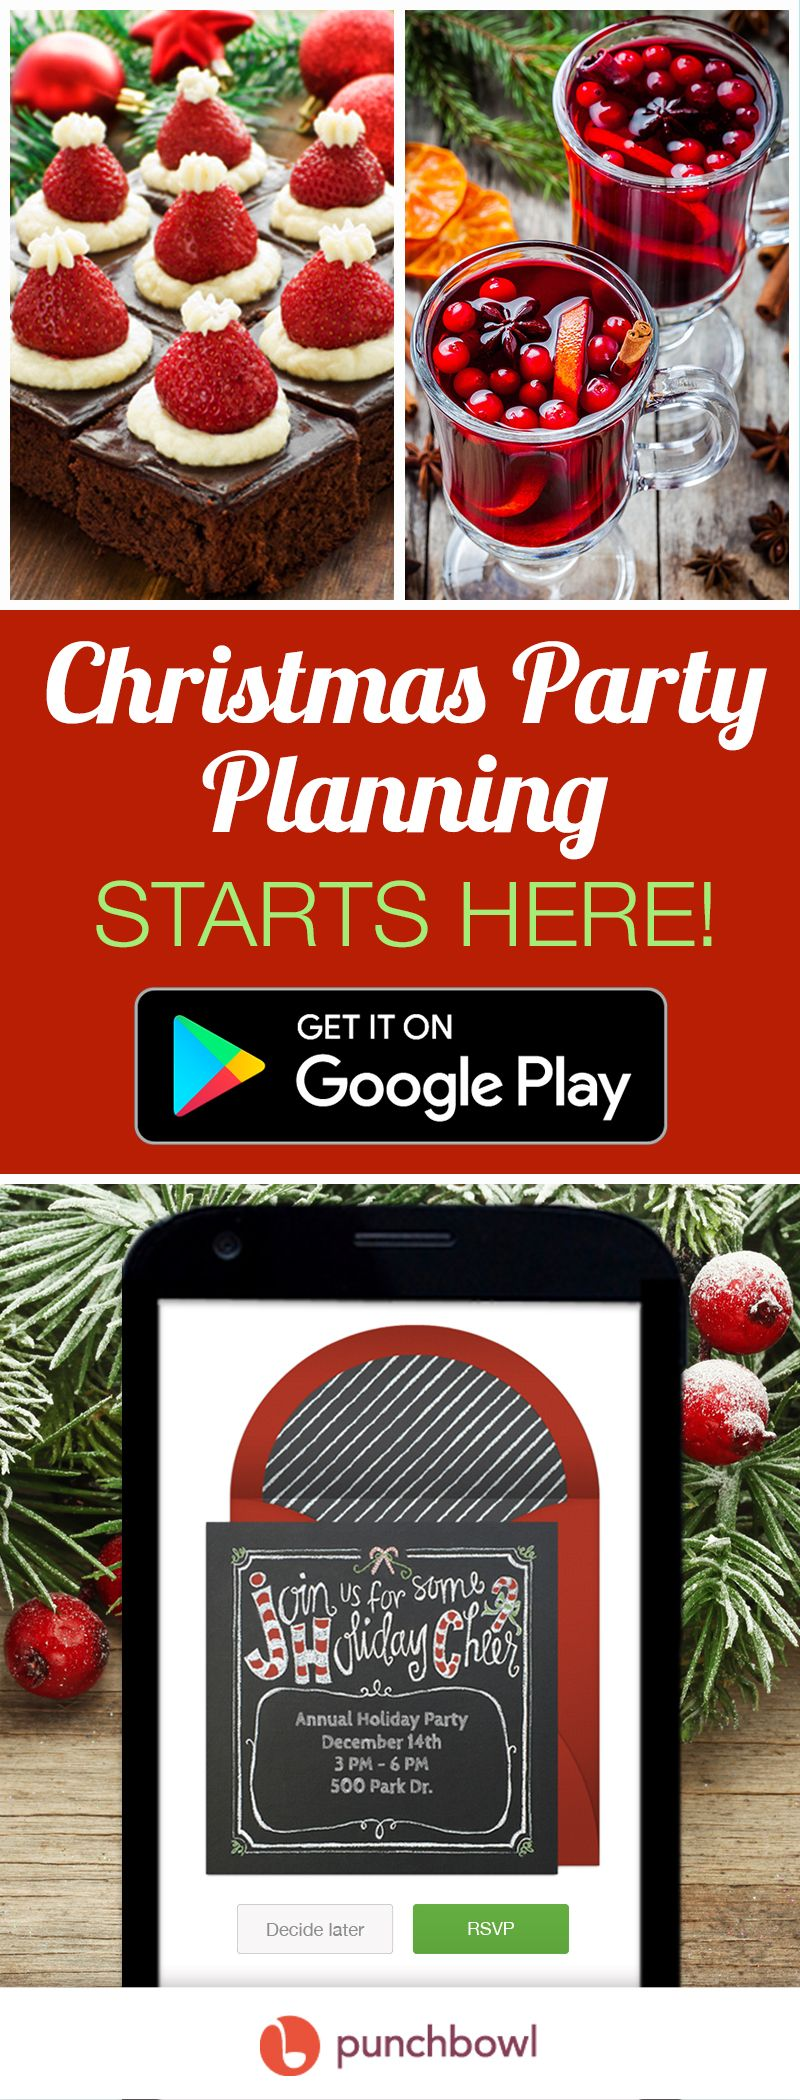 Send free Christmas Party invitations by text message